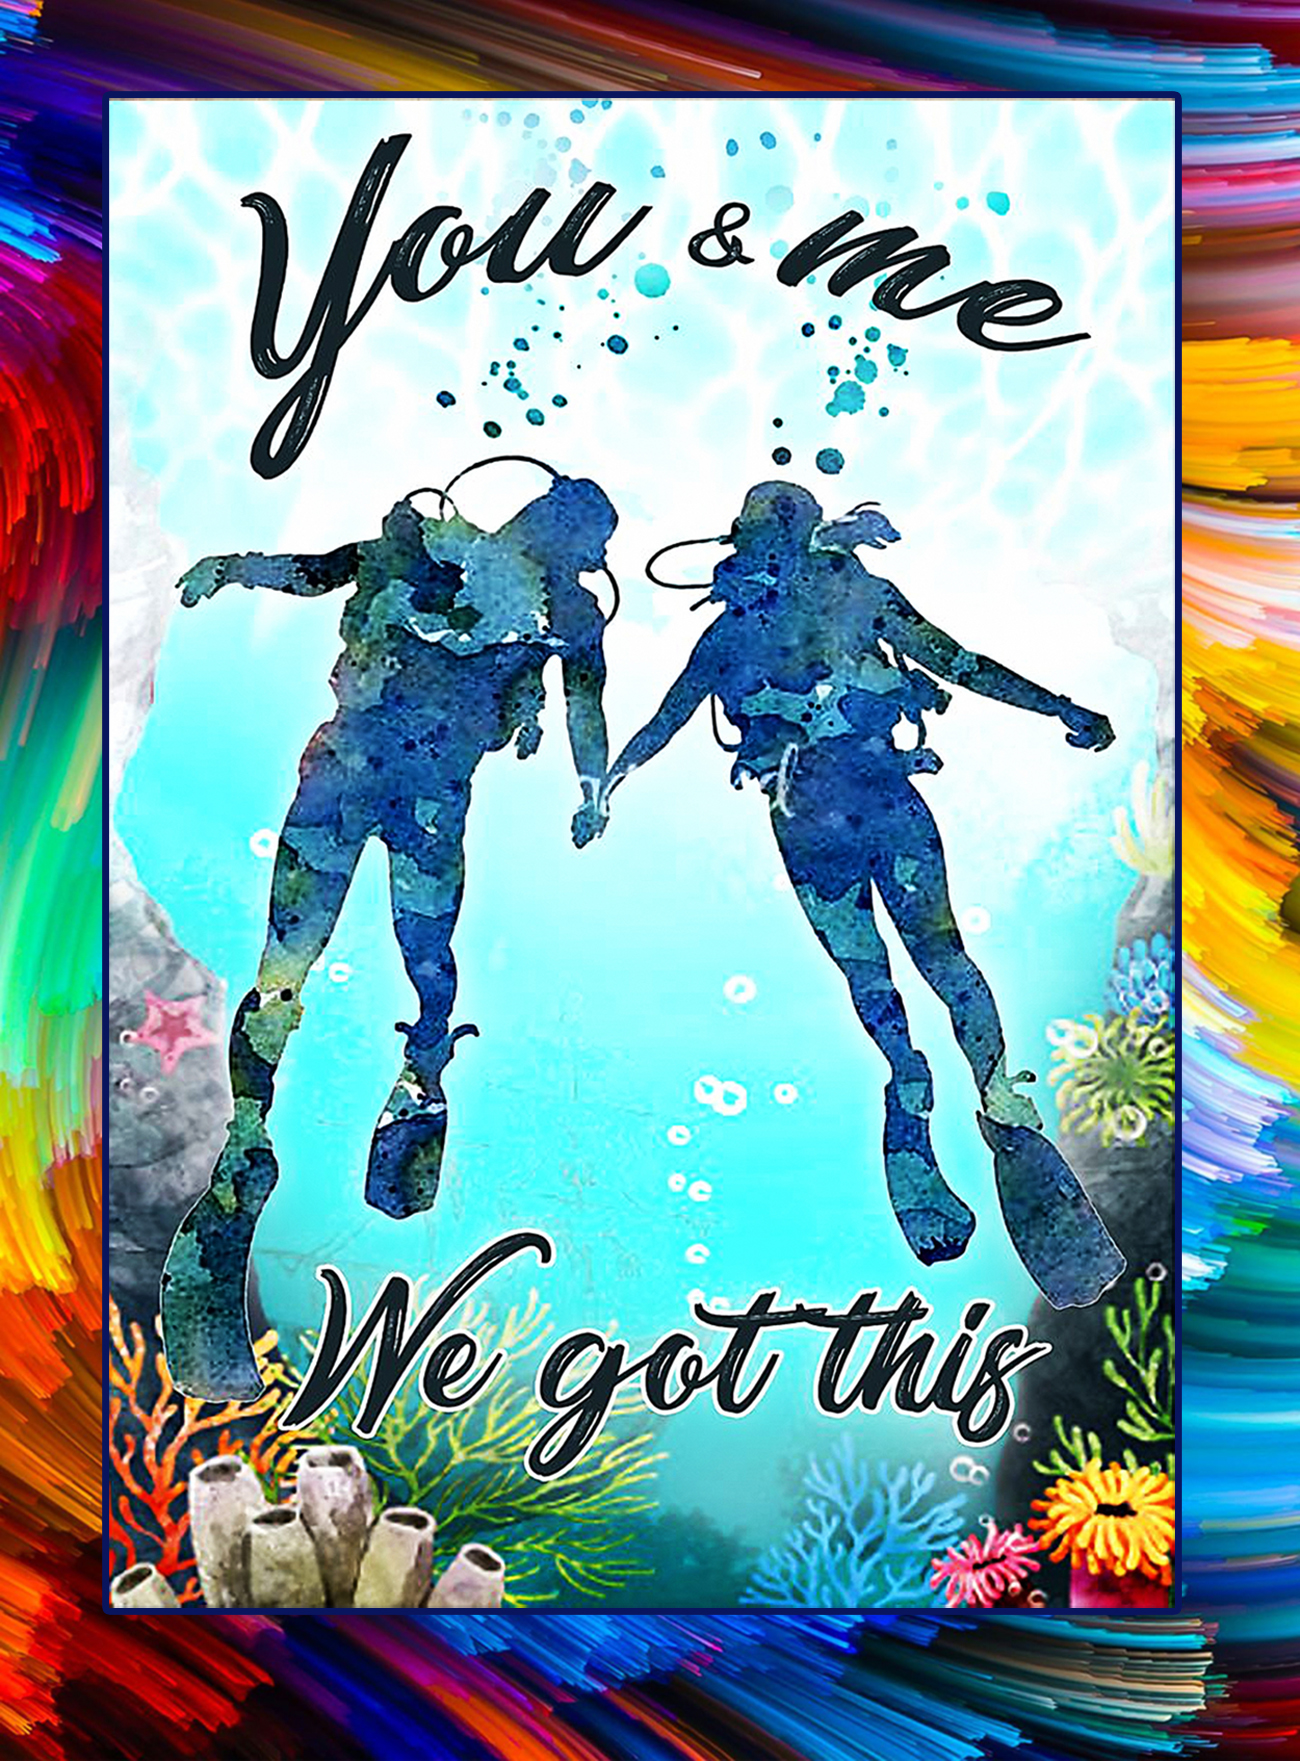 Scuba you and me we got this poster - A1